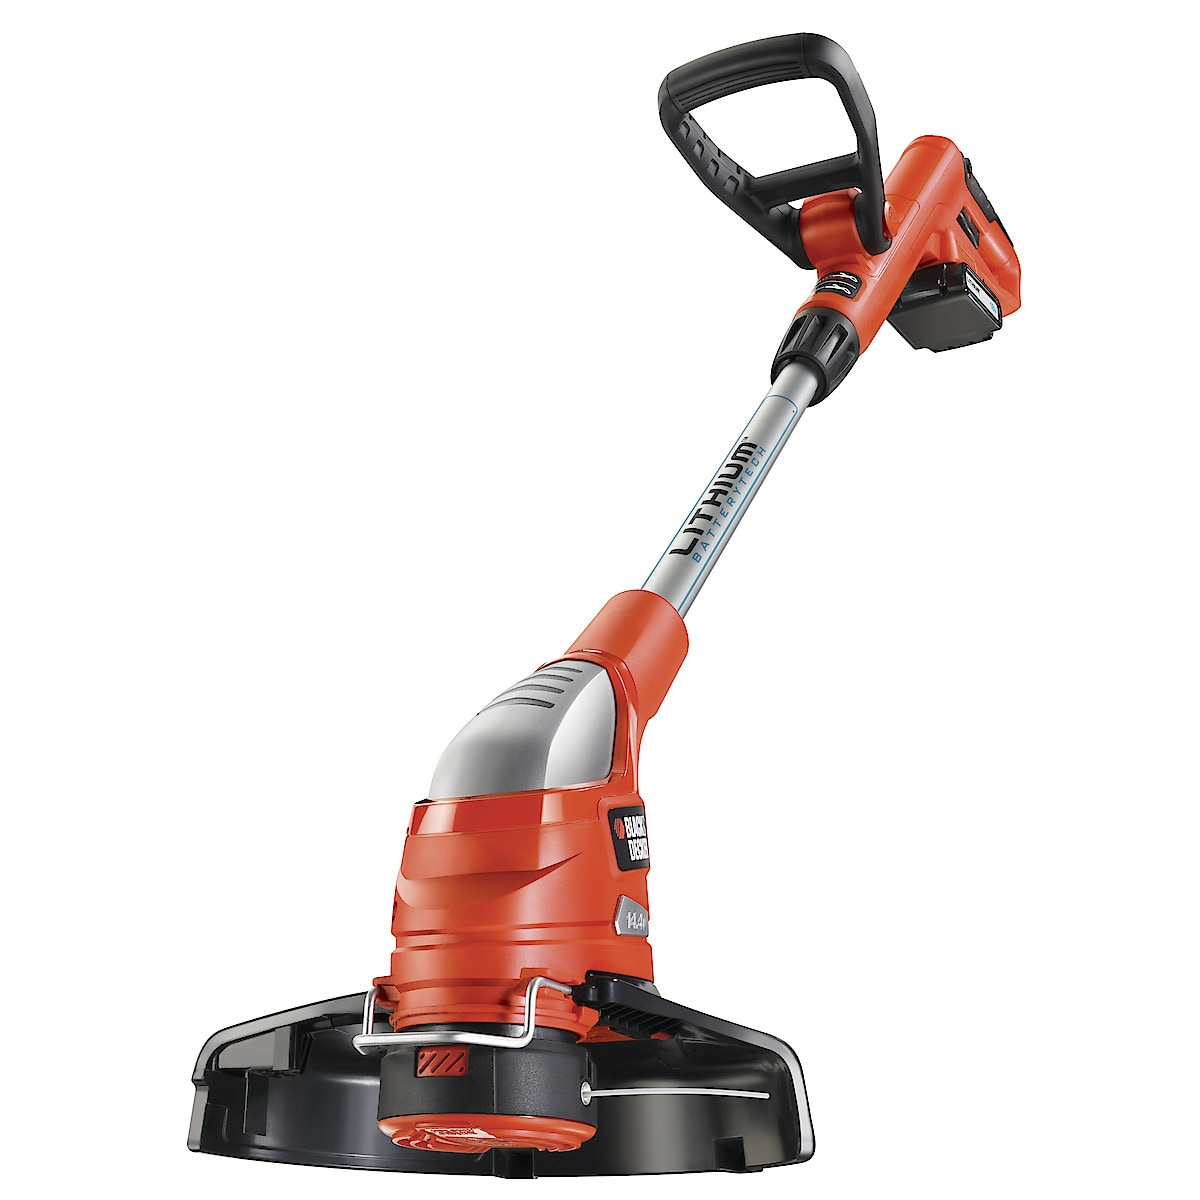 B&D 18 V GLC1825L Grass Trimmer